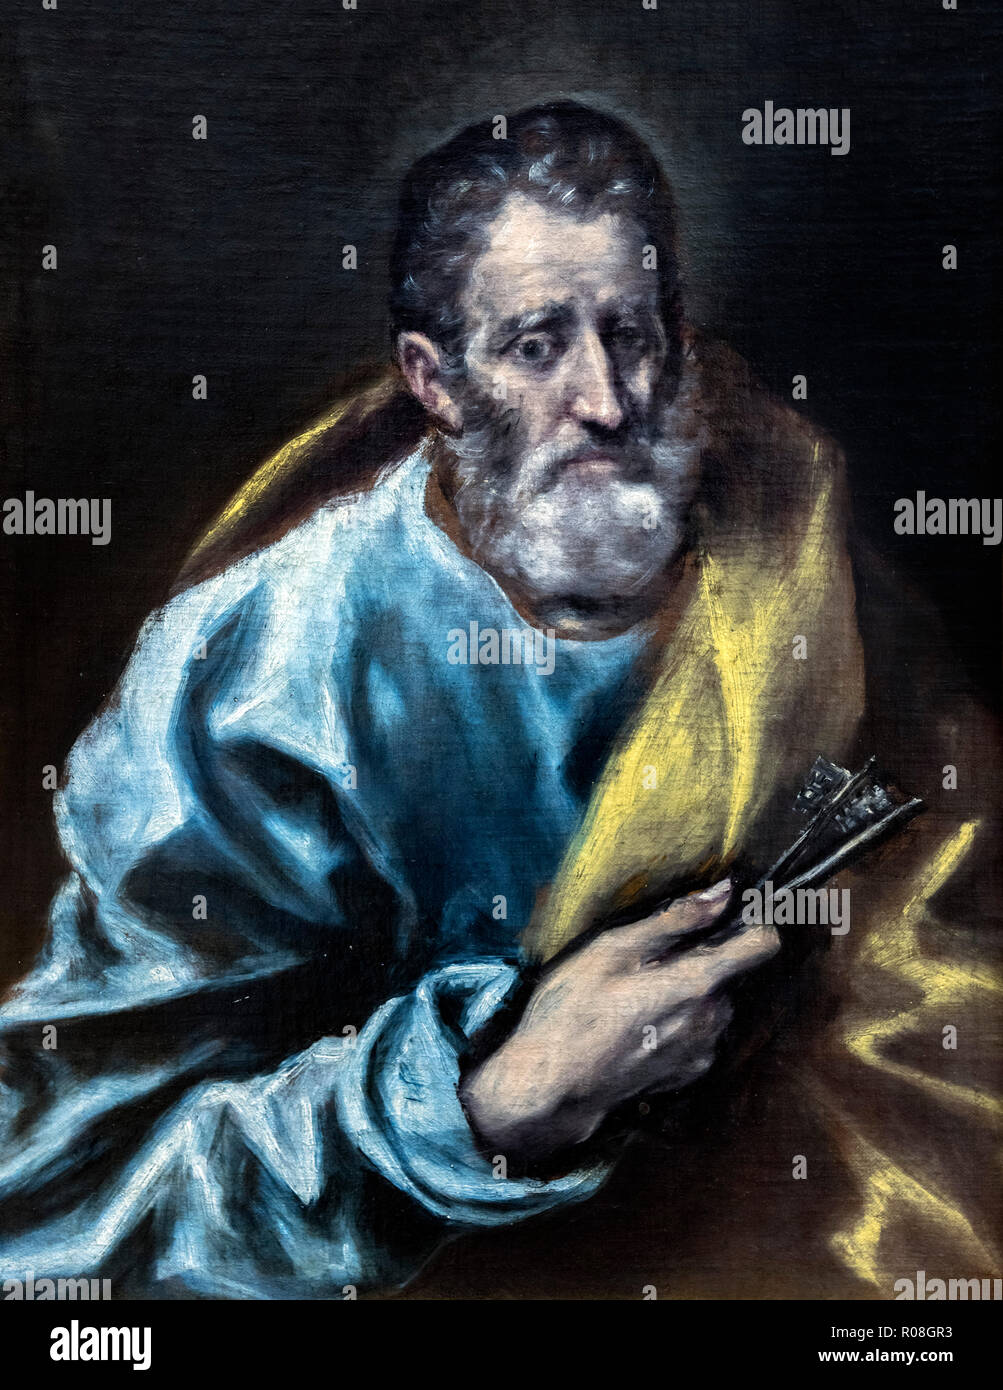 St Peter the Apostle by the workshop of El Greco (Domenikos Theotokopoulos, 1541-1614), oil on canvas, c.1608-14 - Stock Image